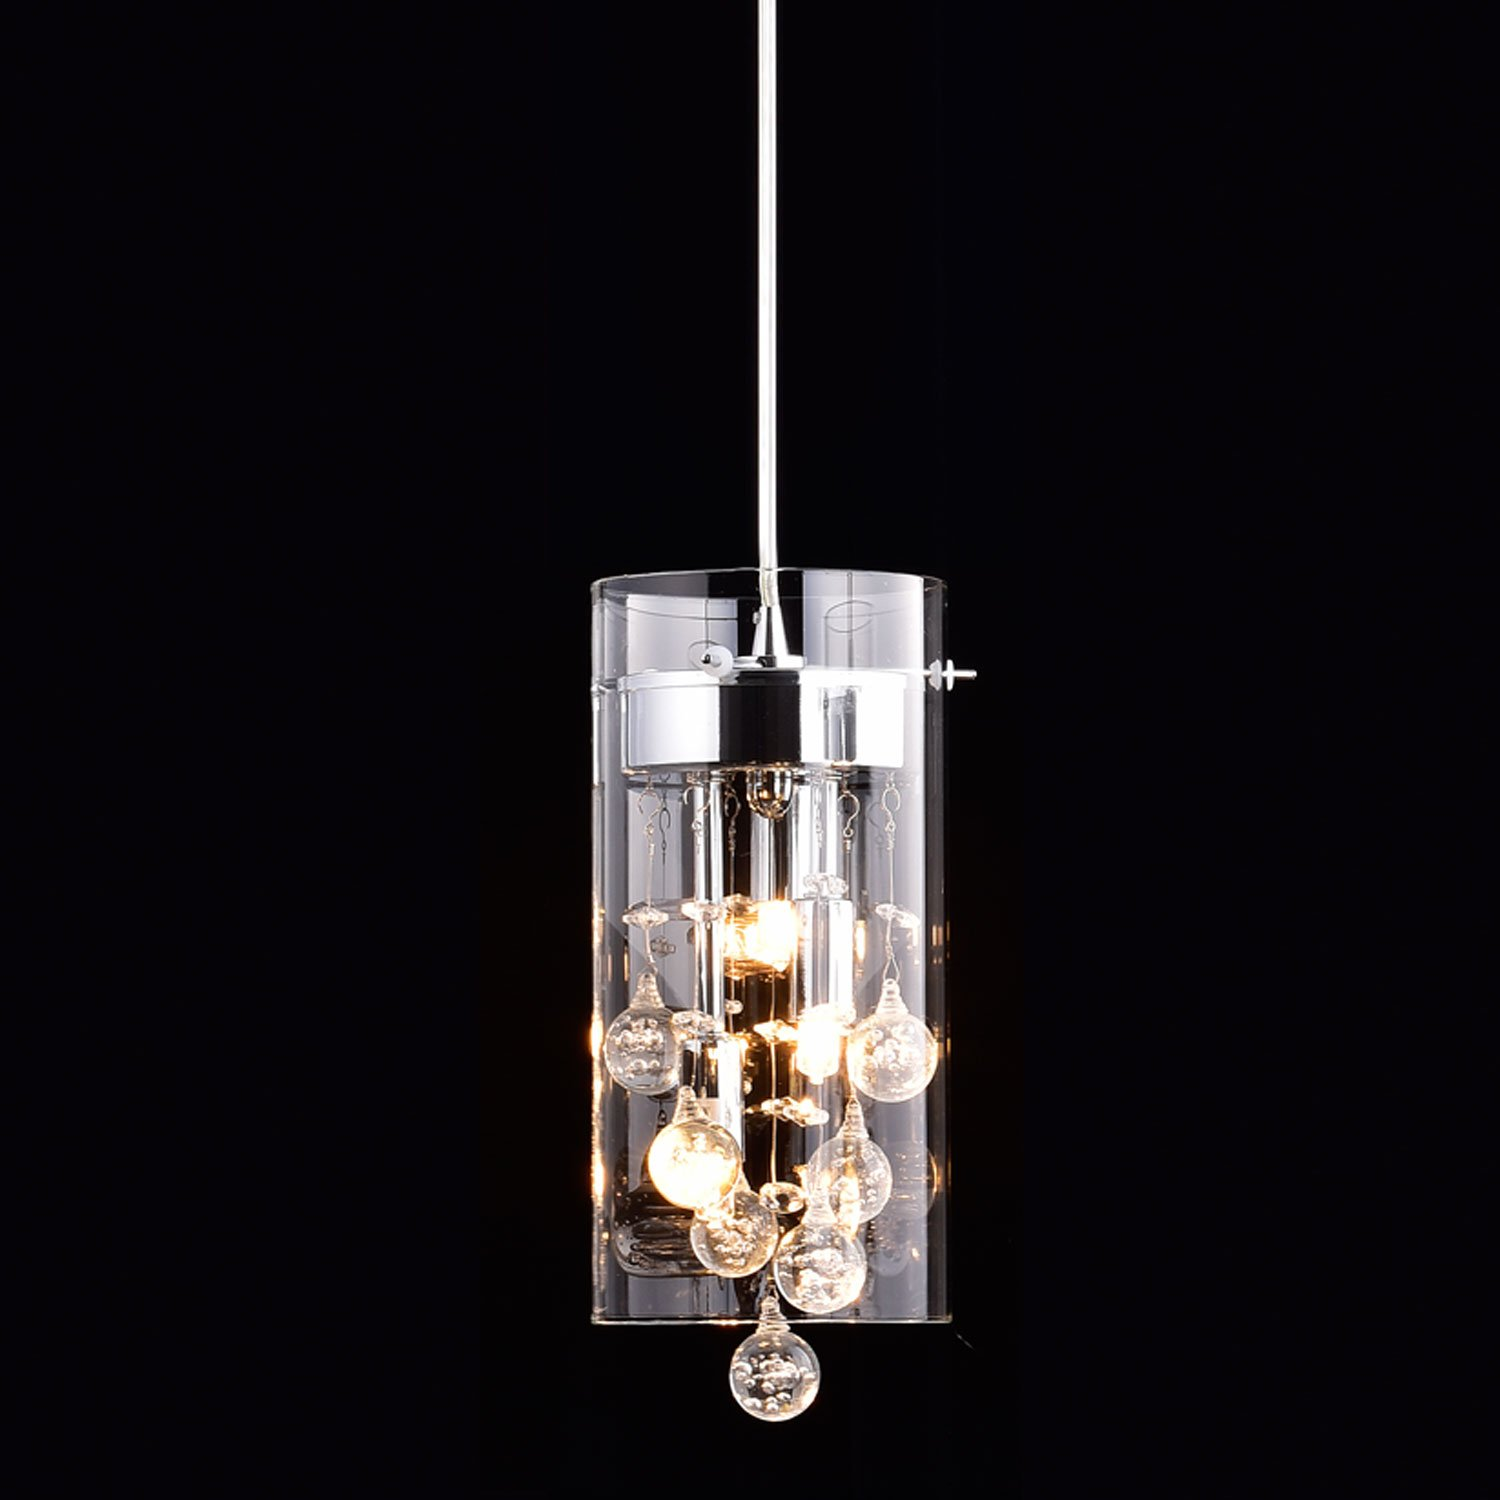 Claxy ecopower lighting glass crystal pendant lighting modern claxy ecopower lighting glass crystal pendant lighting modern chandelier for kitchen amazon arubaitofo Gallery